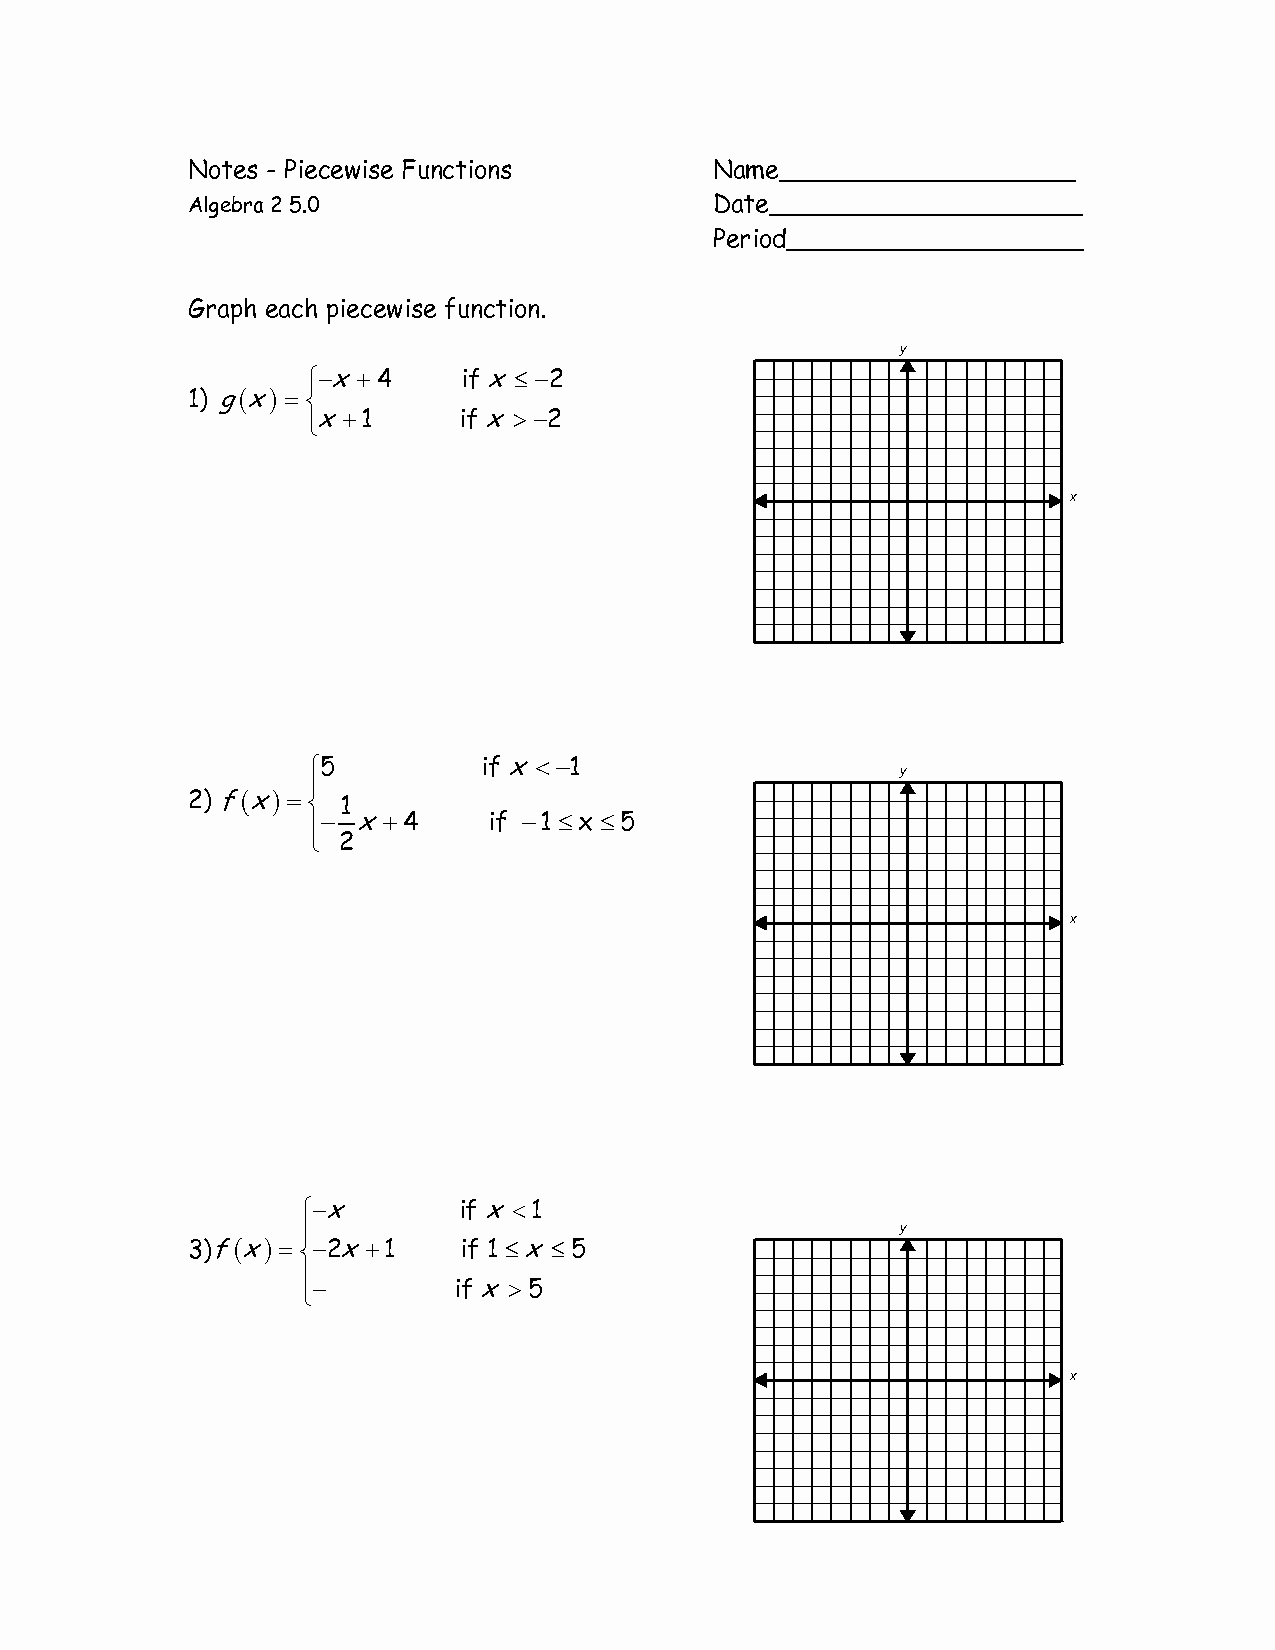 Graphing Rational Functions Worksheet Lovely Graphing Rational Functions Worksheet Answer Key